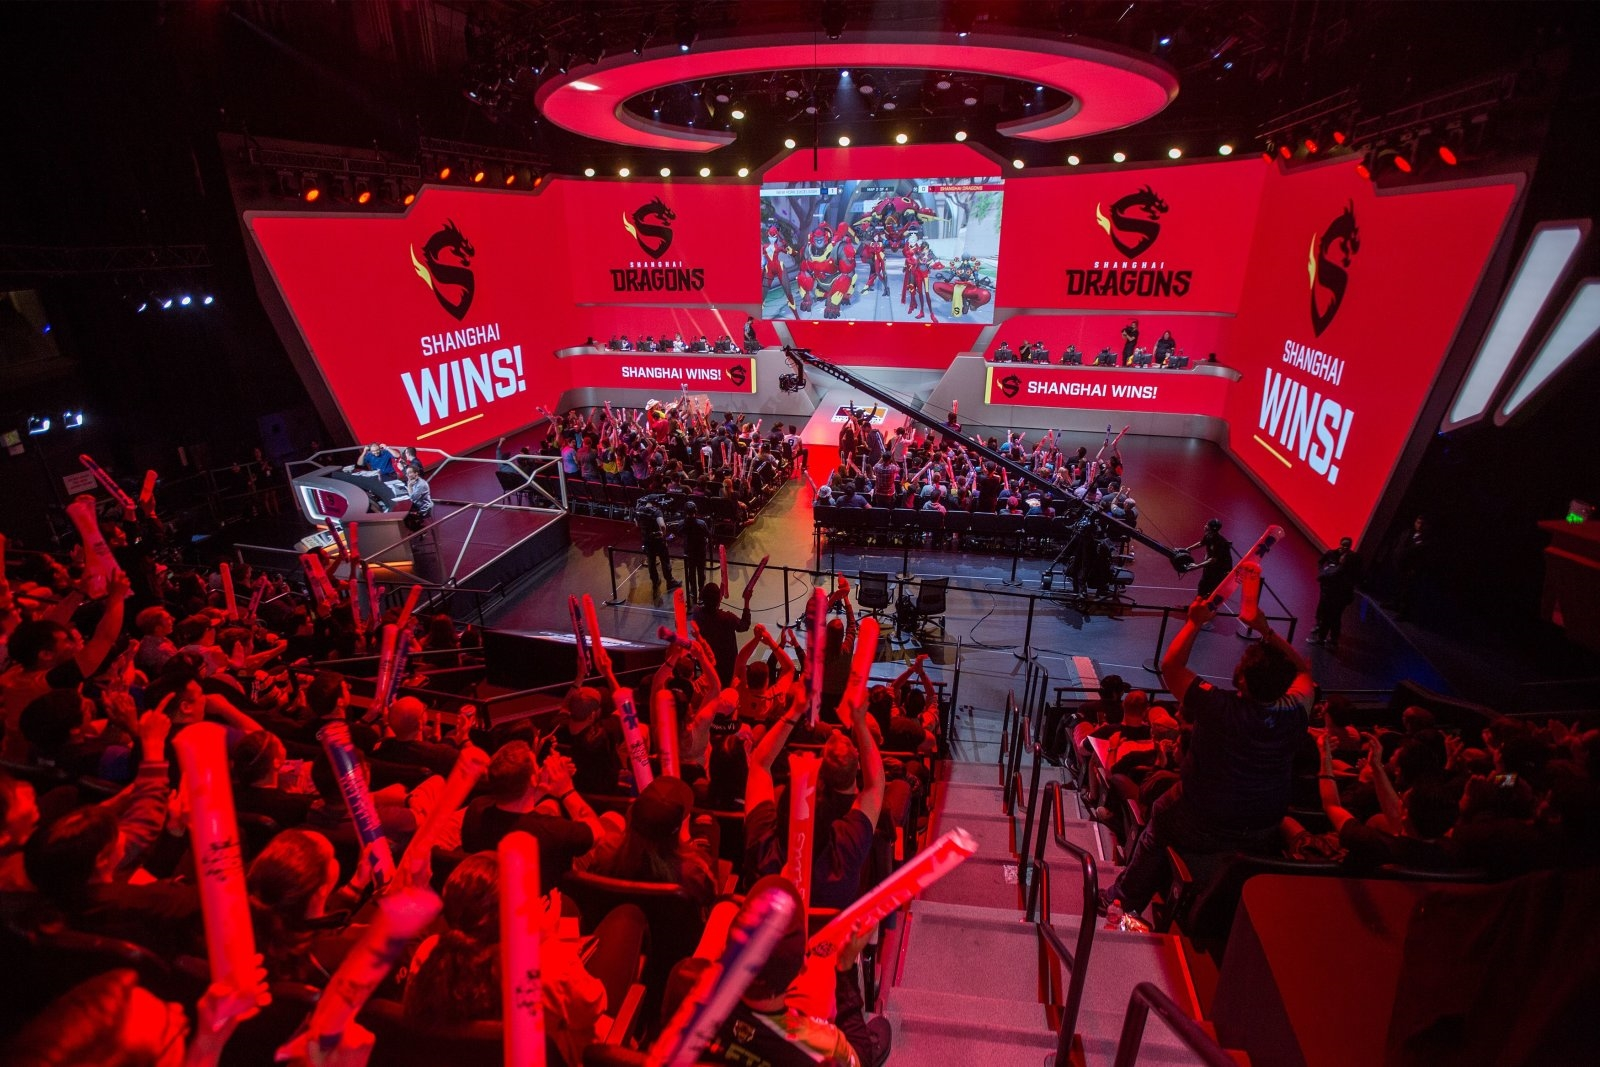 Overwatch League moves matches to South Korea after coronavirus outbreak   DeviceDaily.com